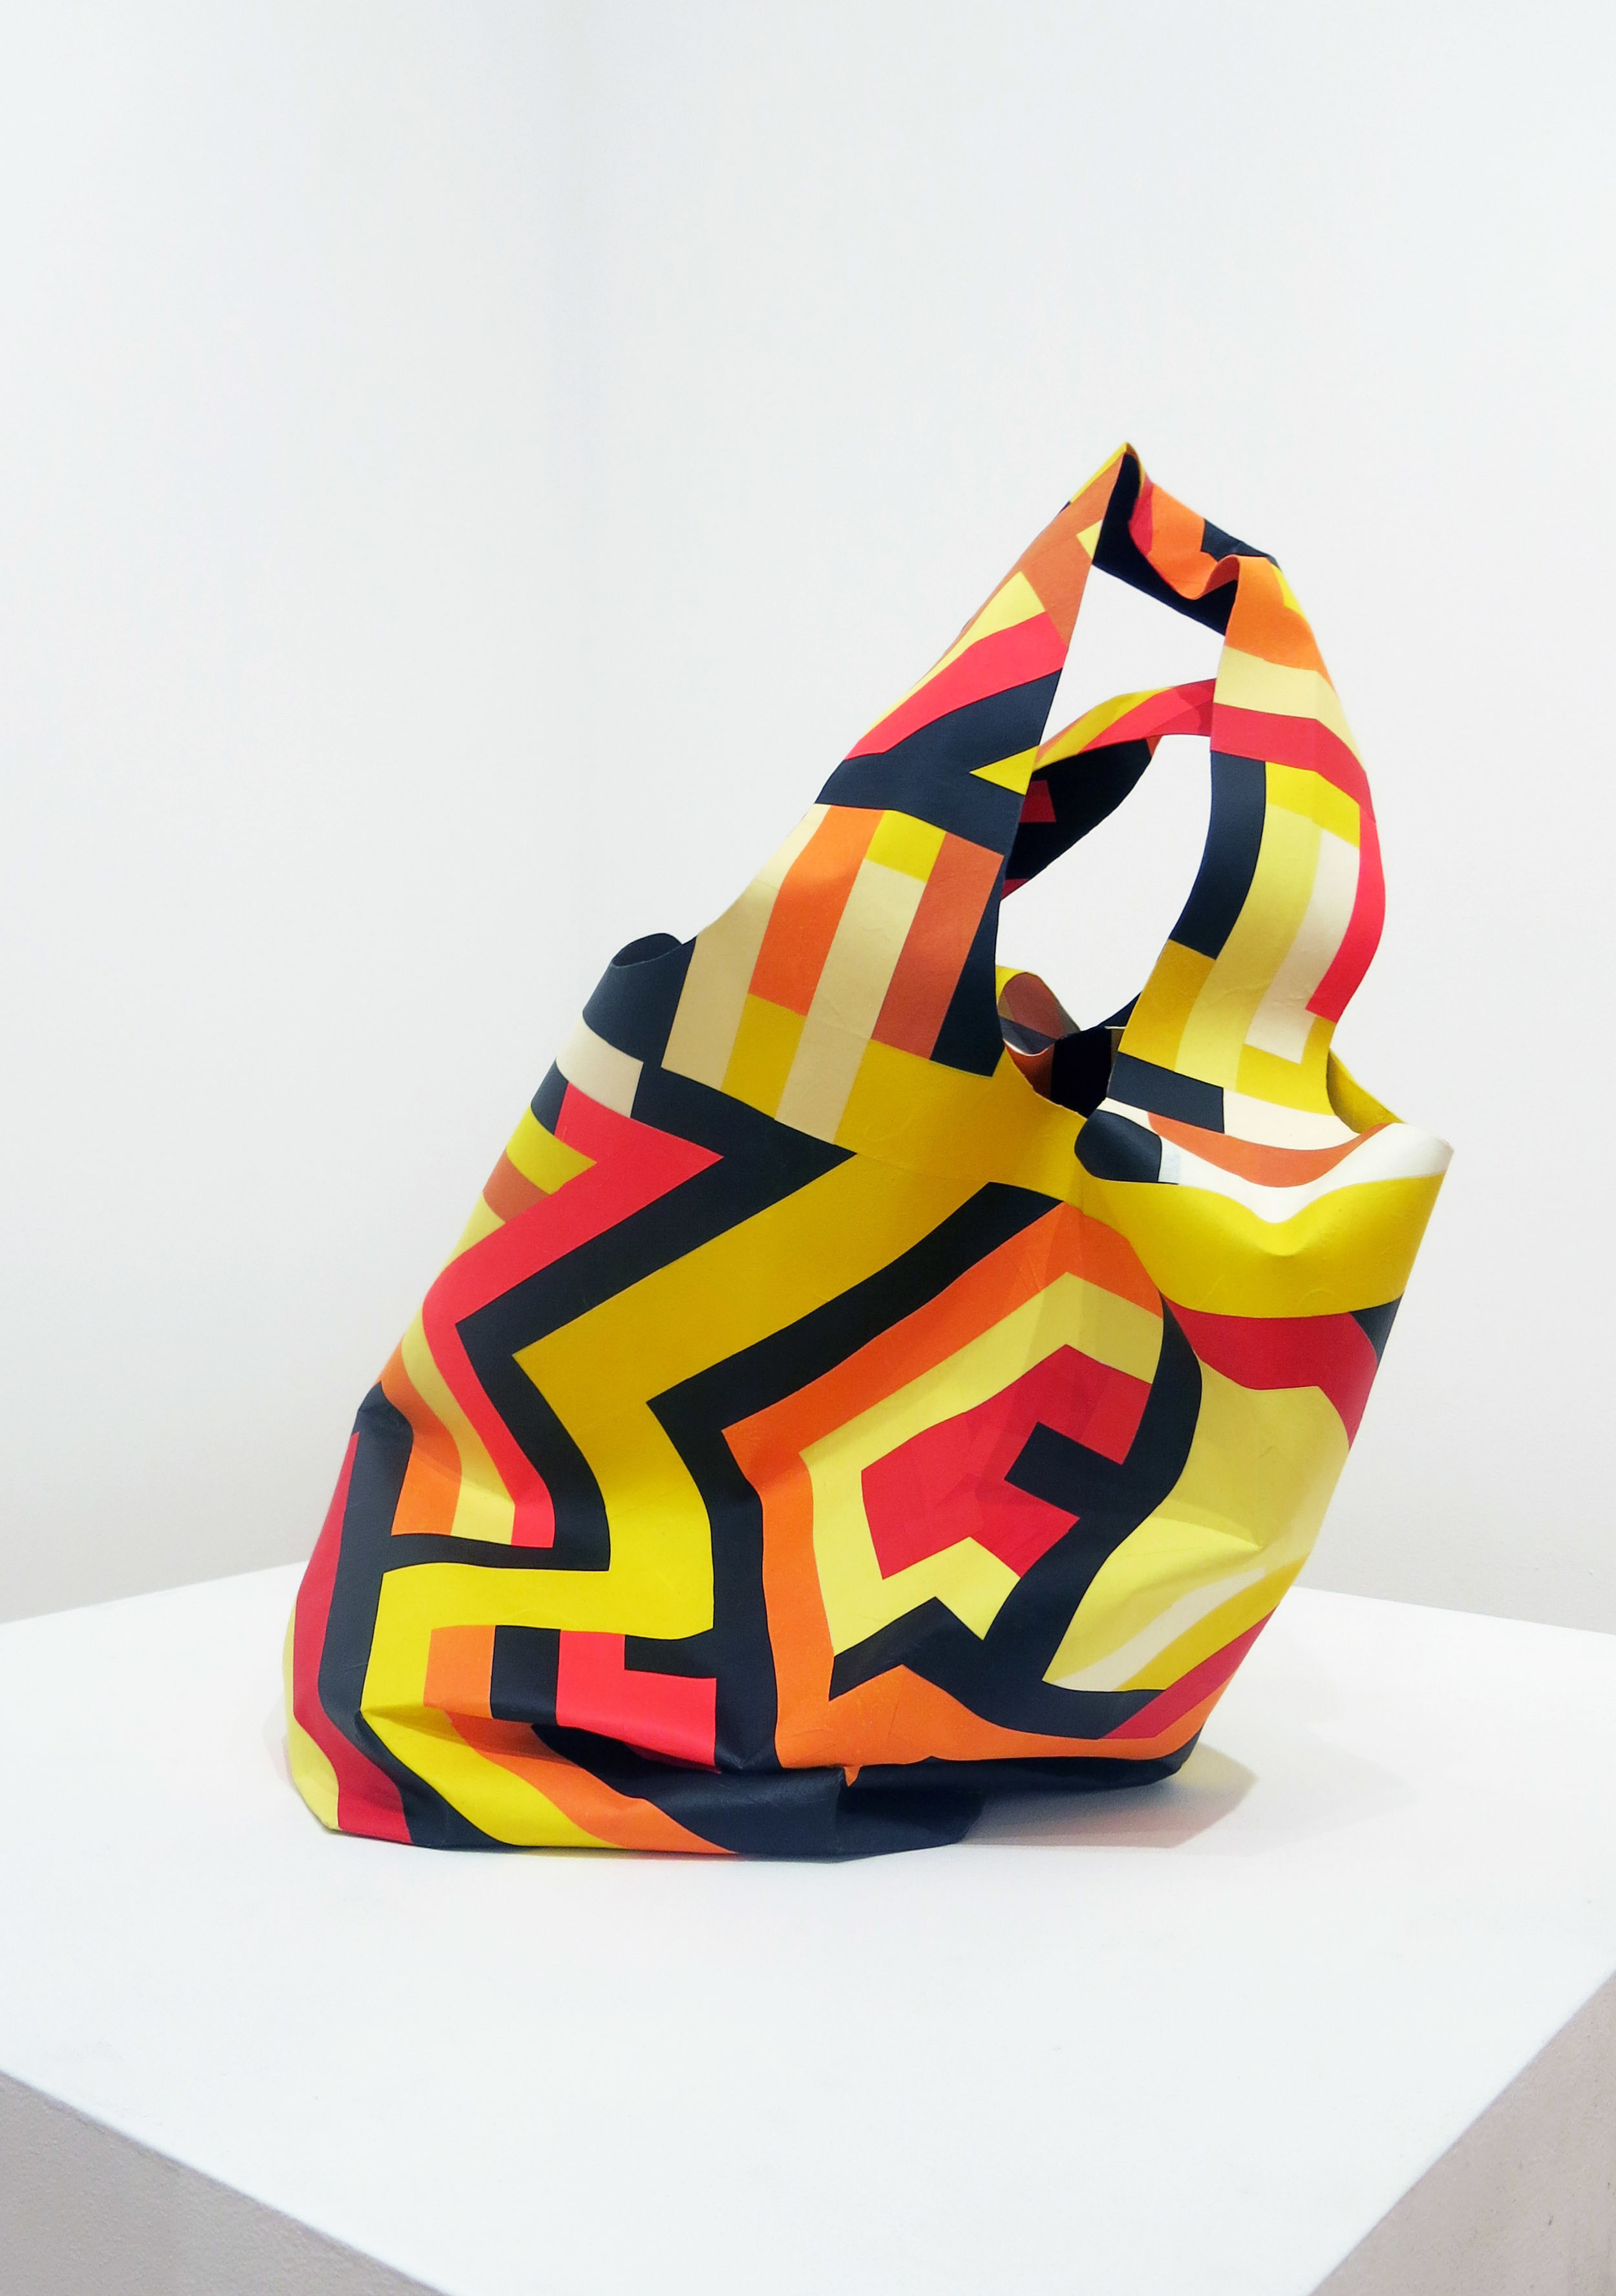 Billy Copley, Woodlawn Vase, 2017, acrylic and prepared paper on formed paper, 25h x 26 1/2w x 19d in.